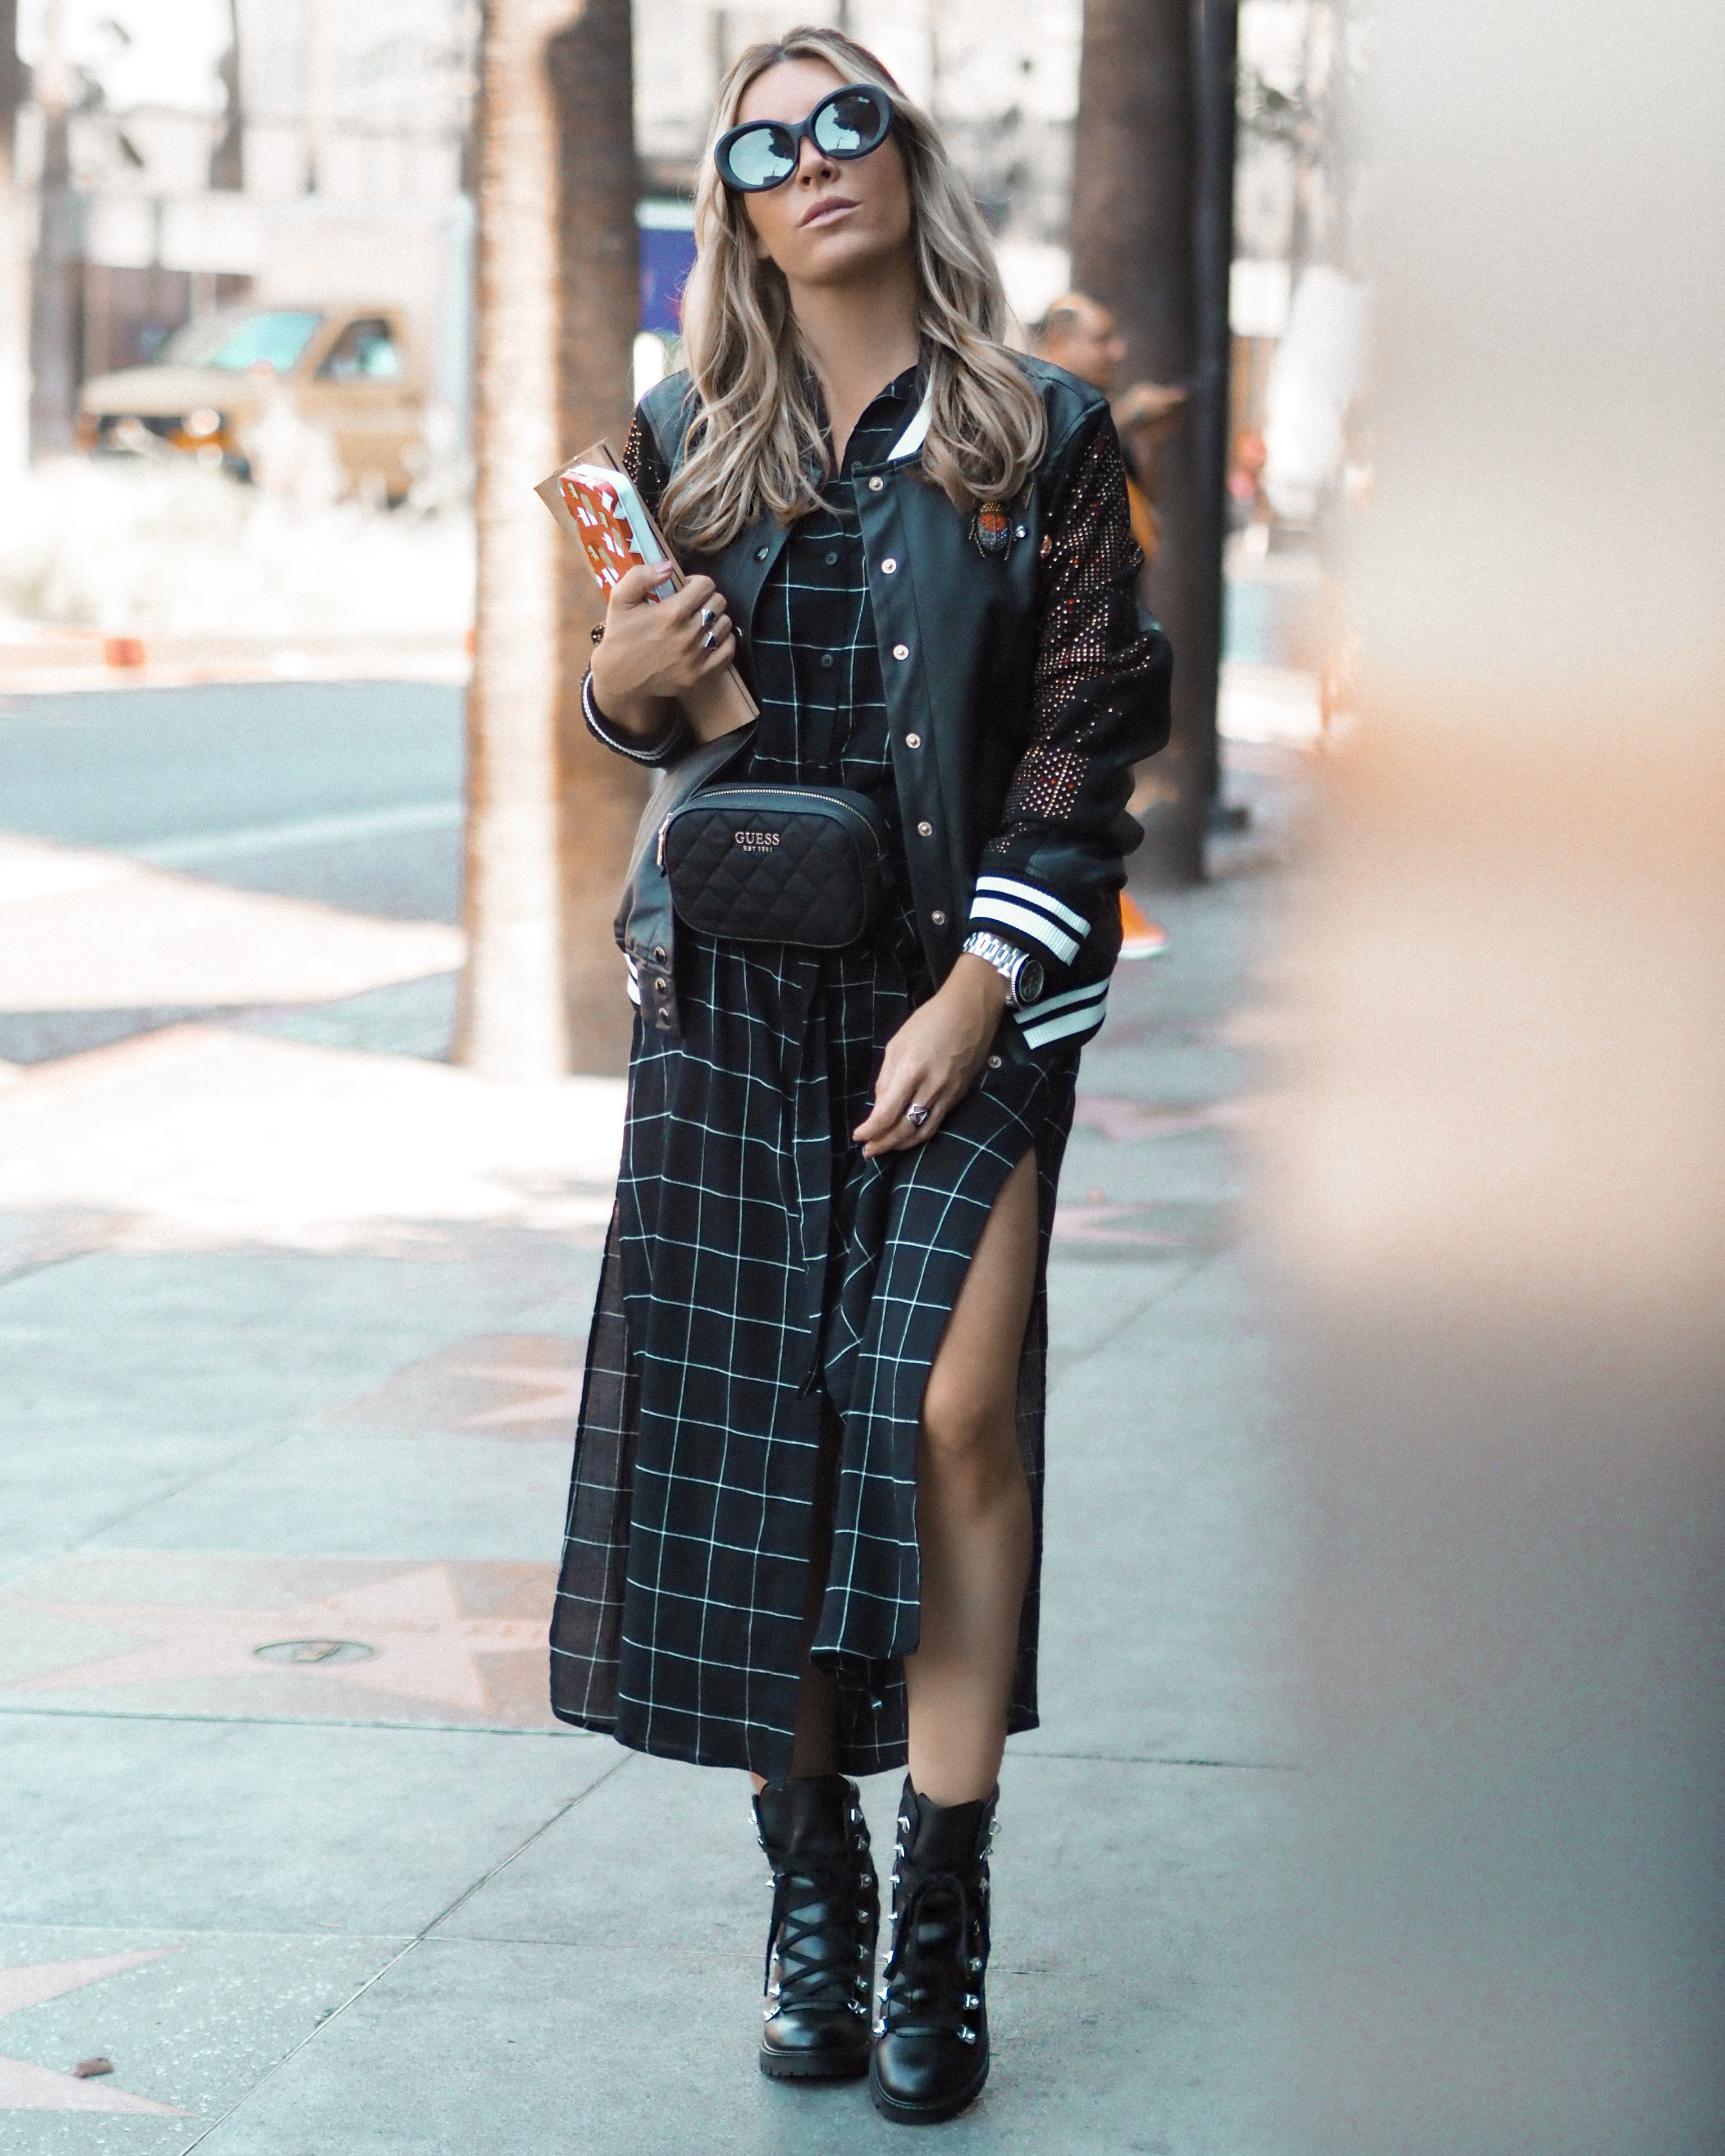 checked dress fashion blogger Los Angeles 2018